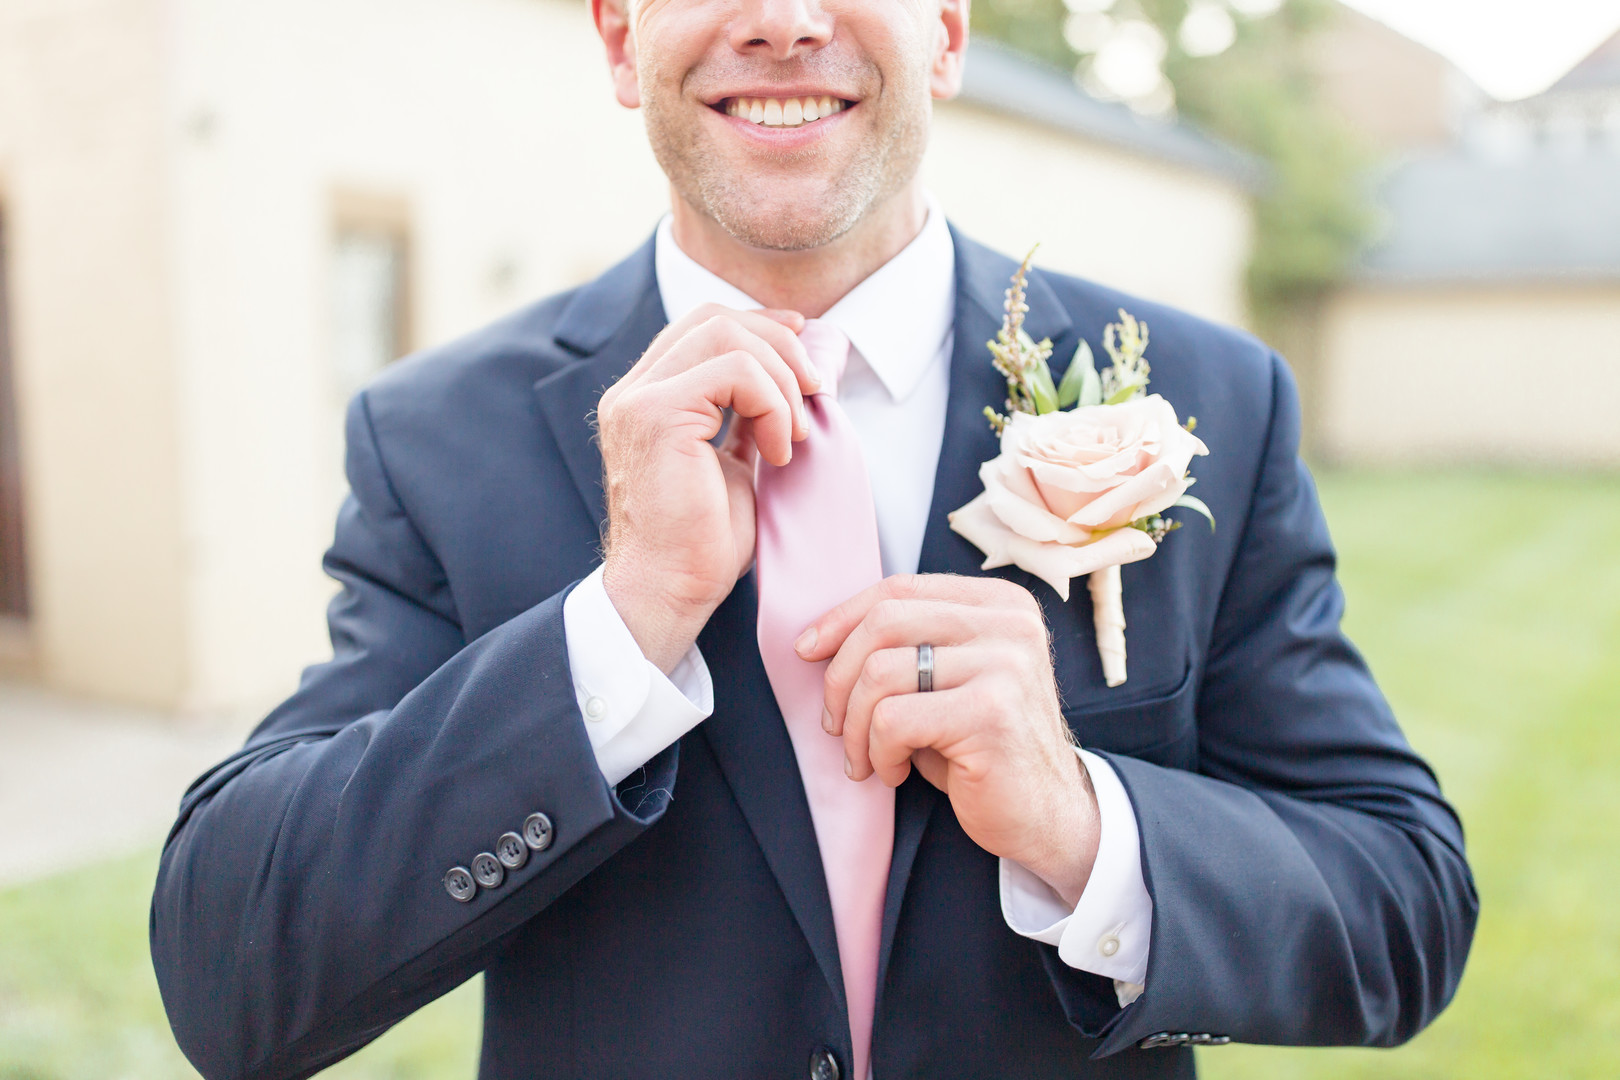 groom with large rose boutonniere